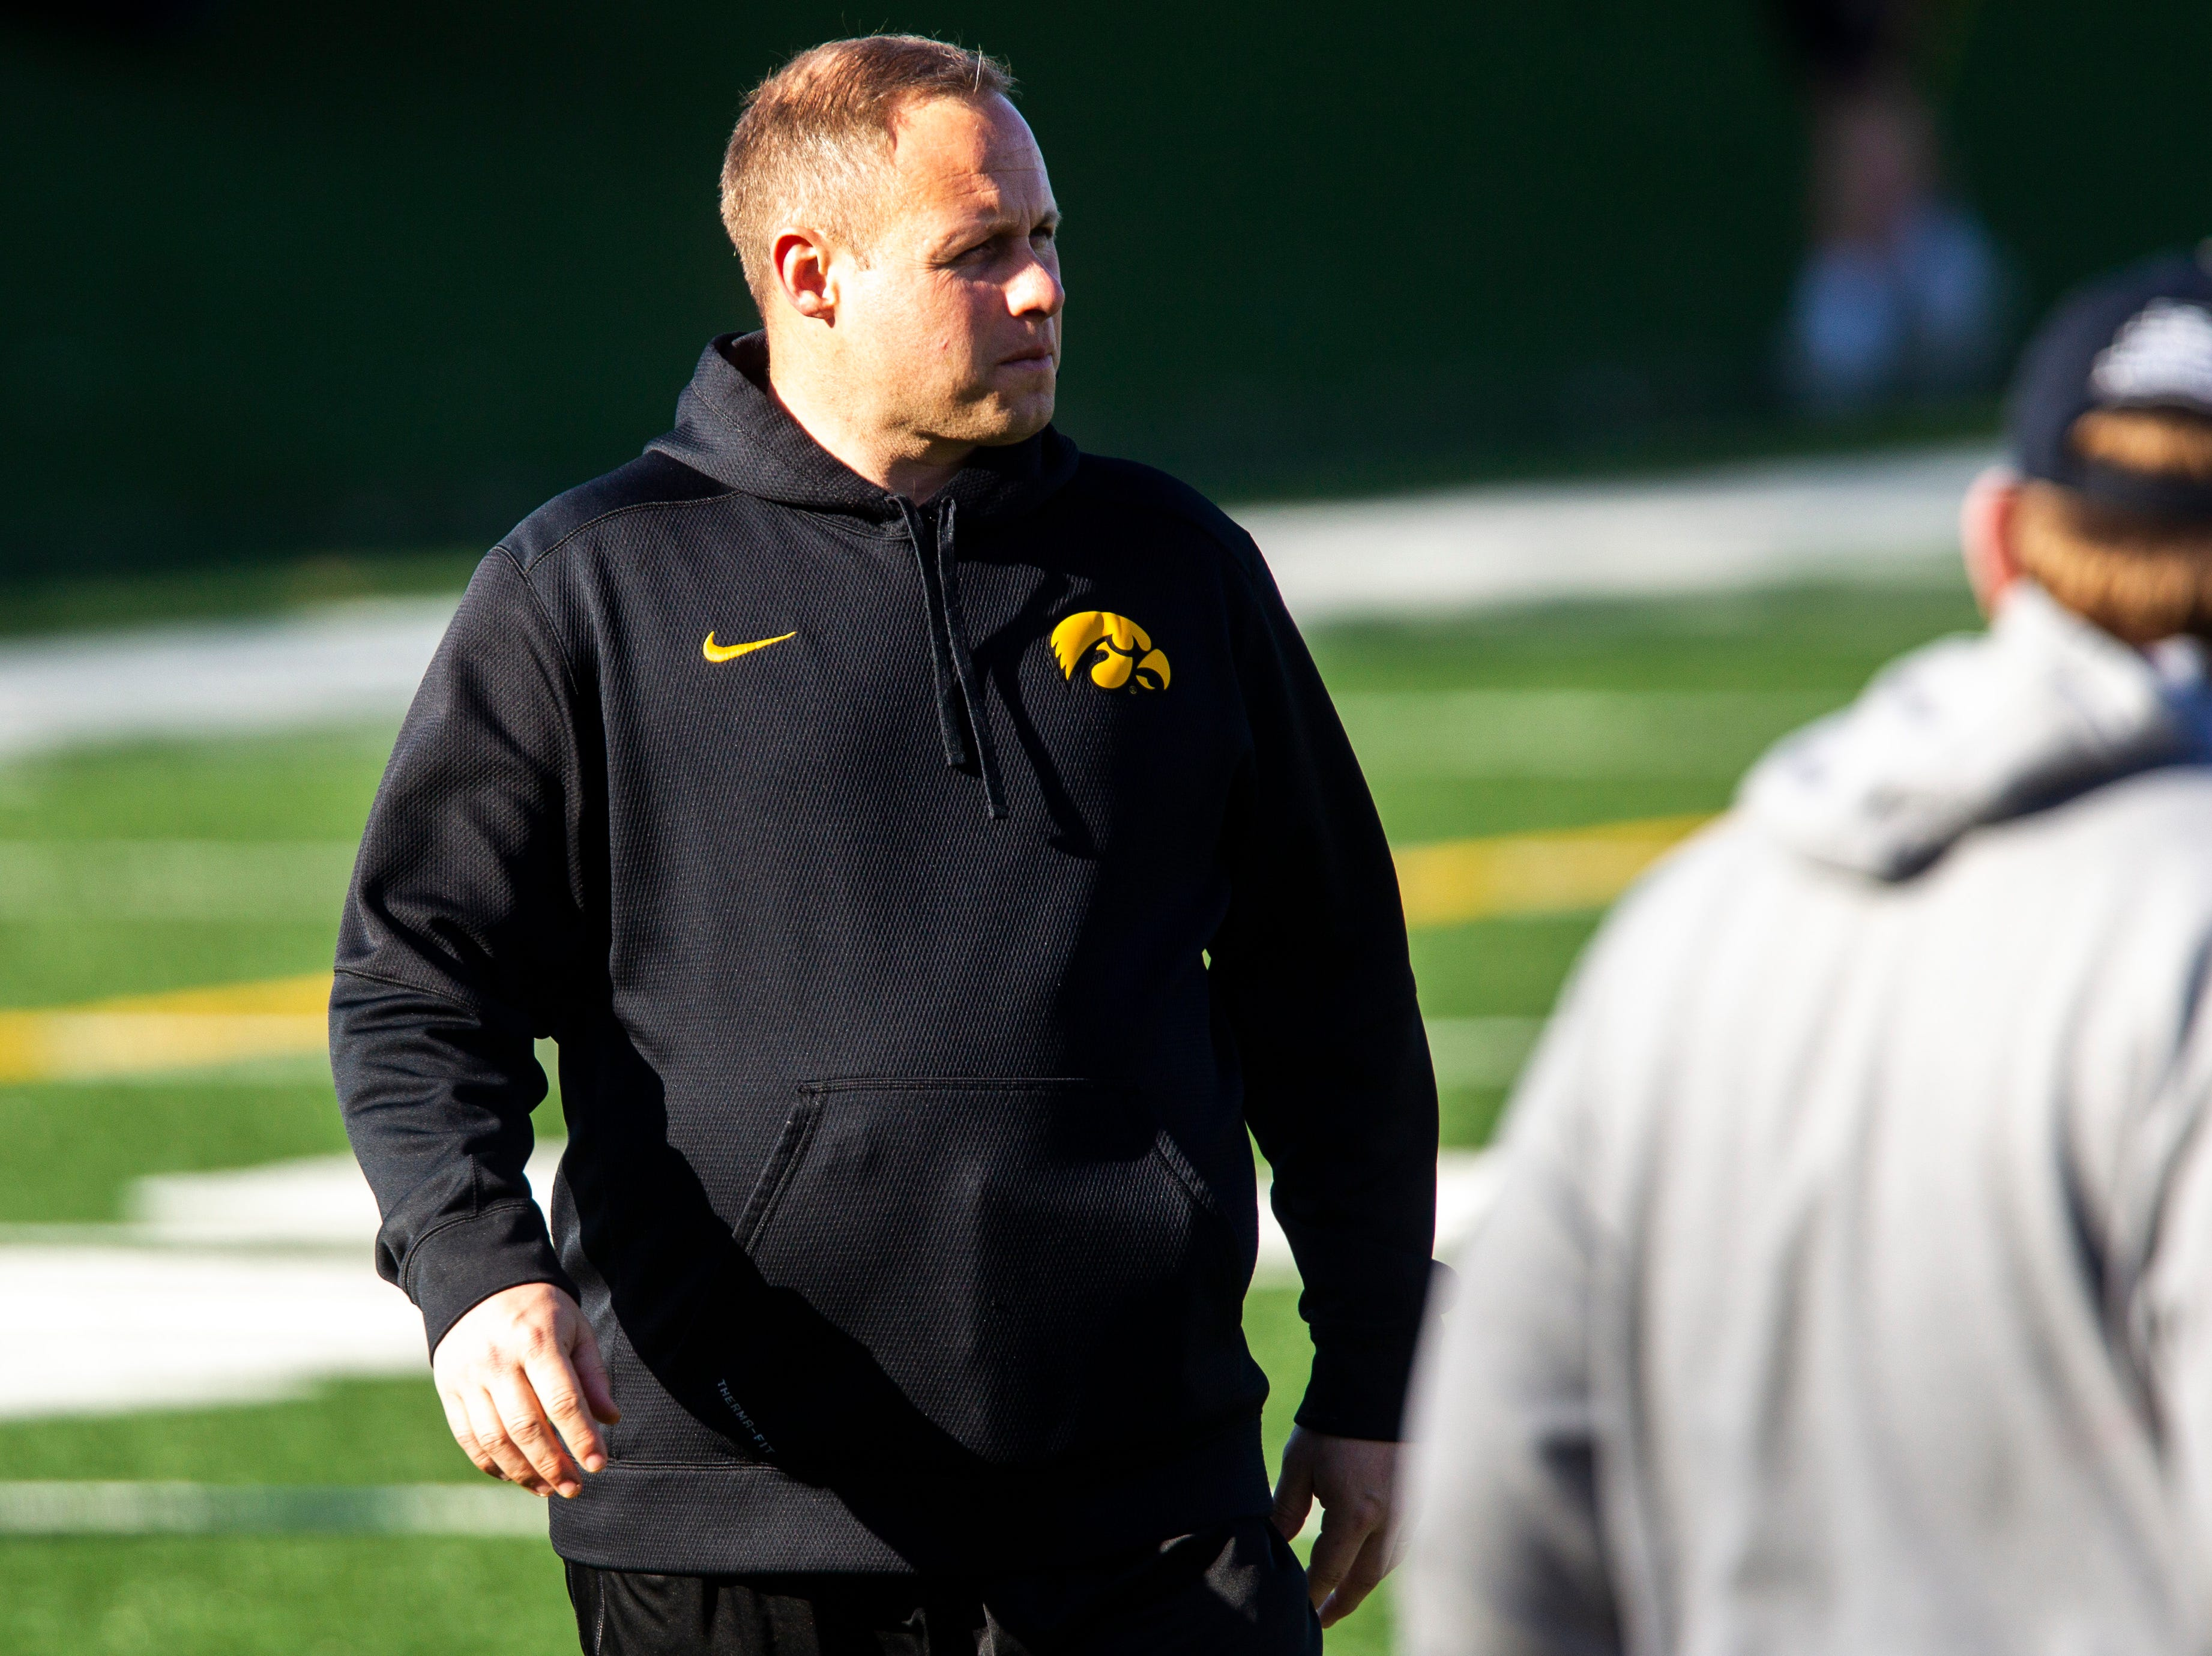 Iowa linebackers coach Seth Wallace is pictured during the final spring football practice, Friday, April 26, 2019, at the University of Iowa outdoor practice facility in Iowa City, Iowa.